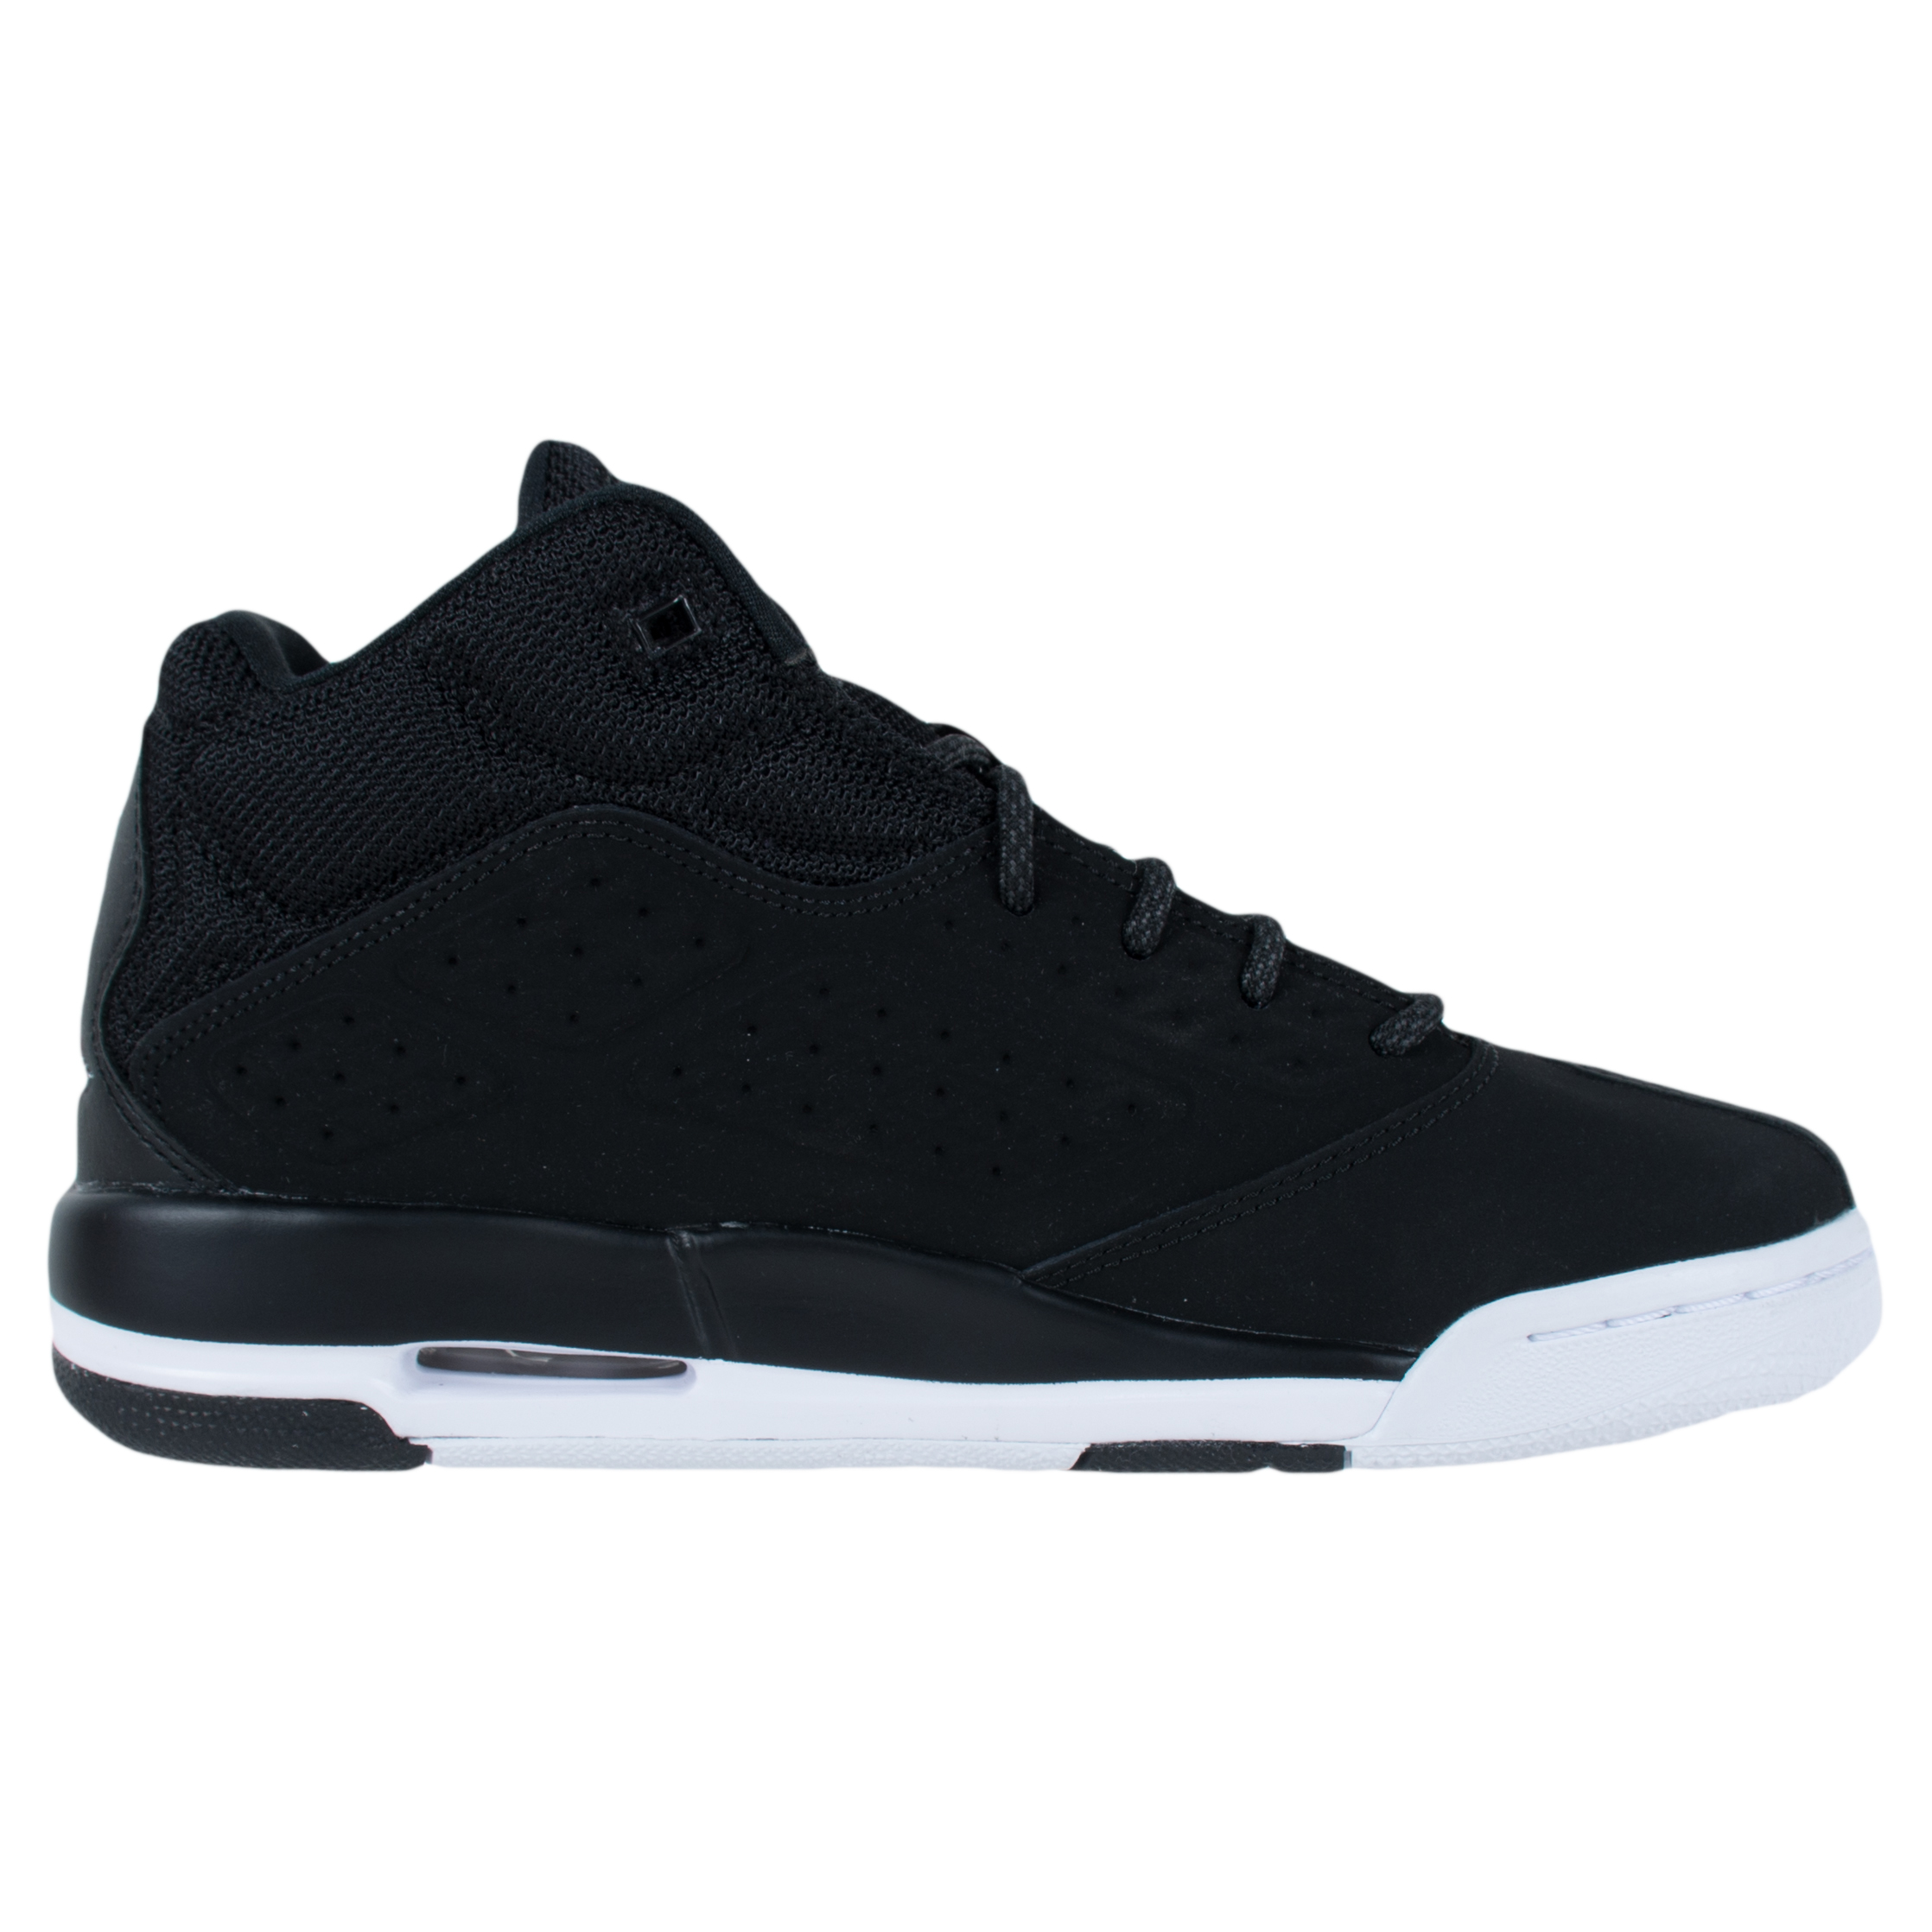 NIKE BOYS JORDAN NEW SCHOOL BASKETBALL SHOES BLACK WHITE ...